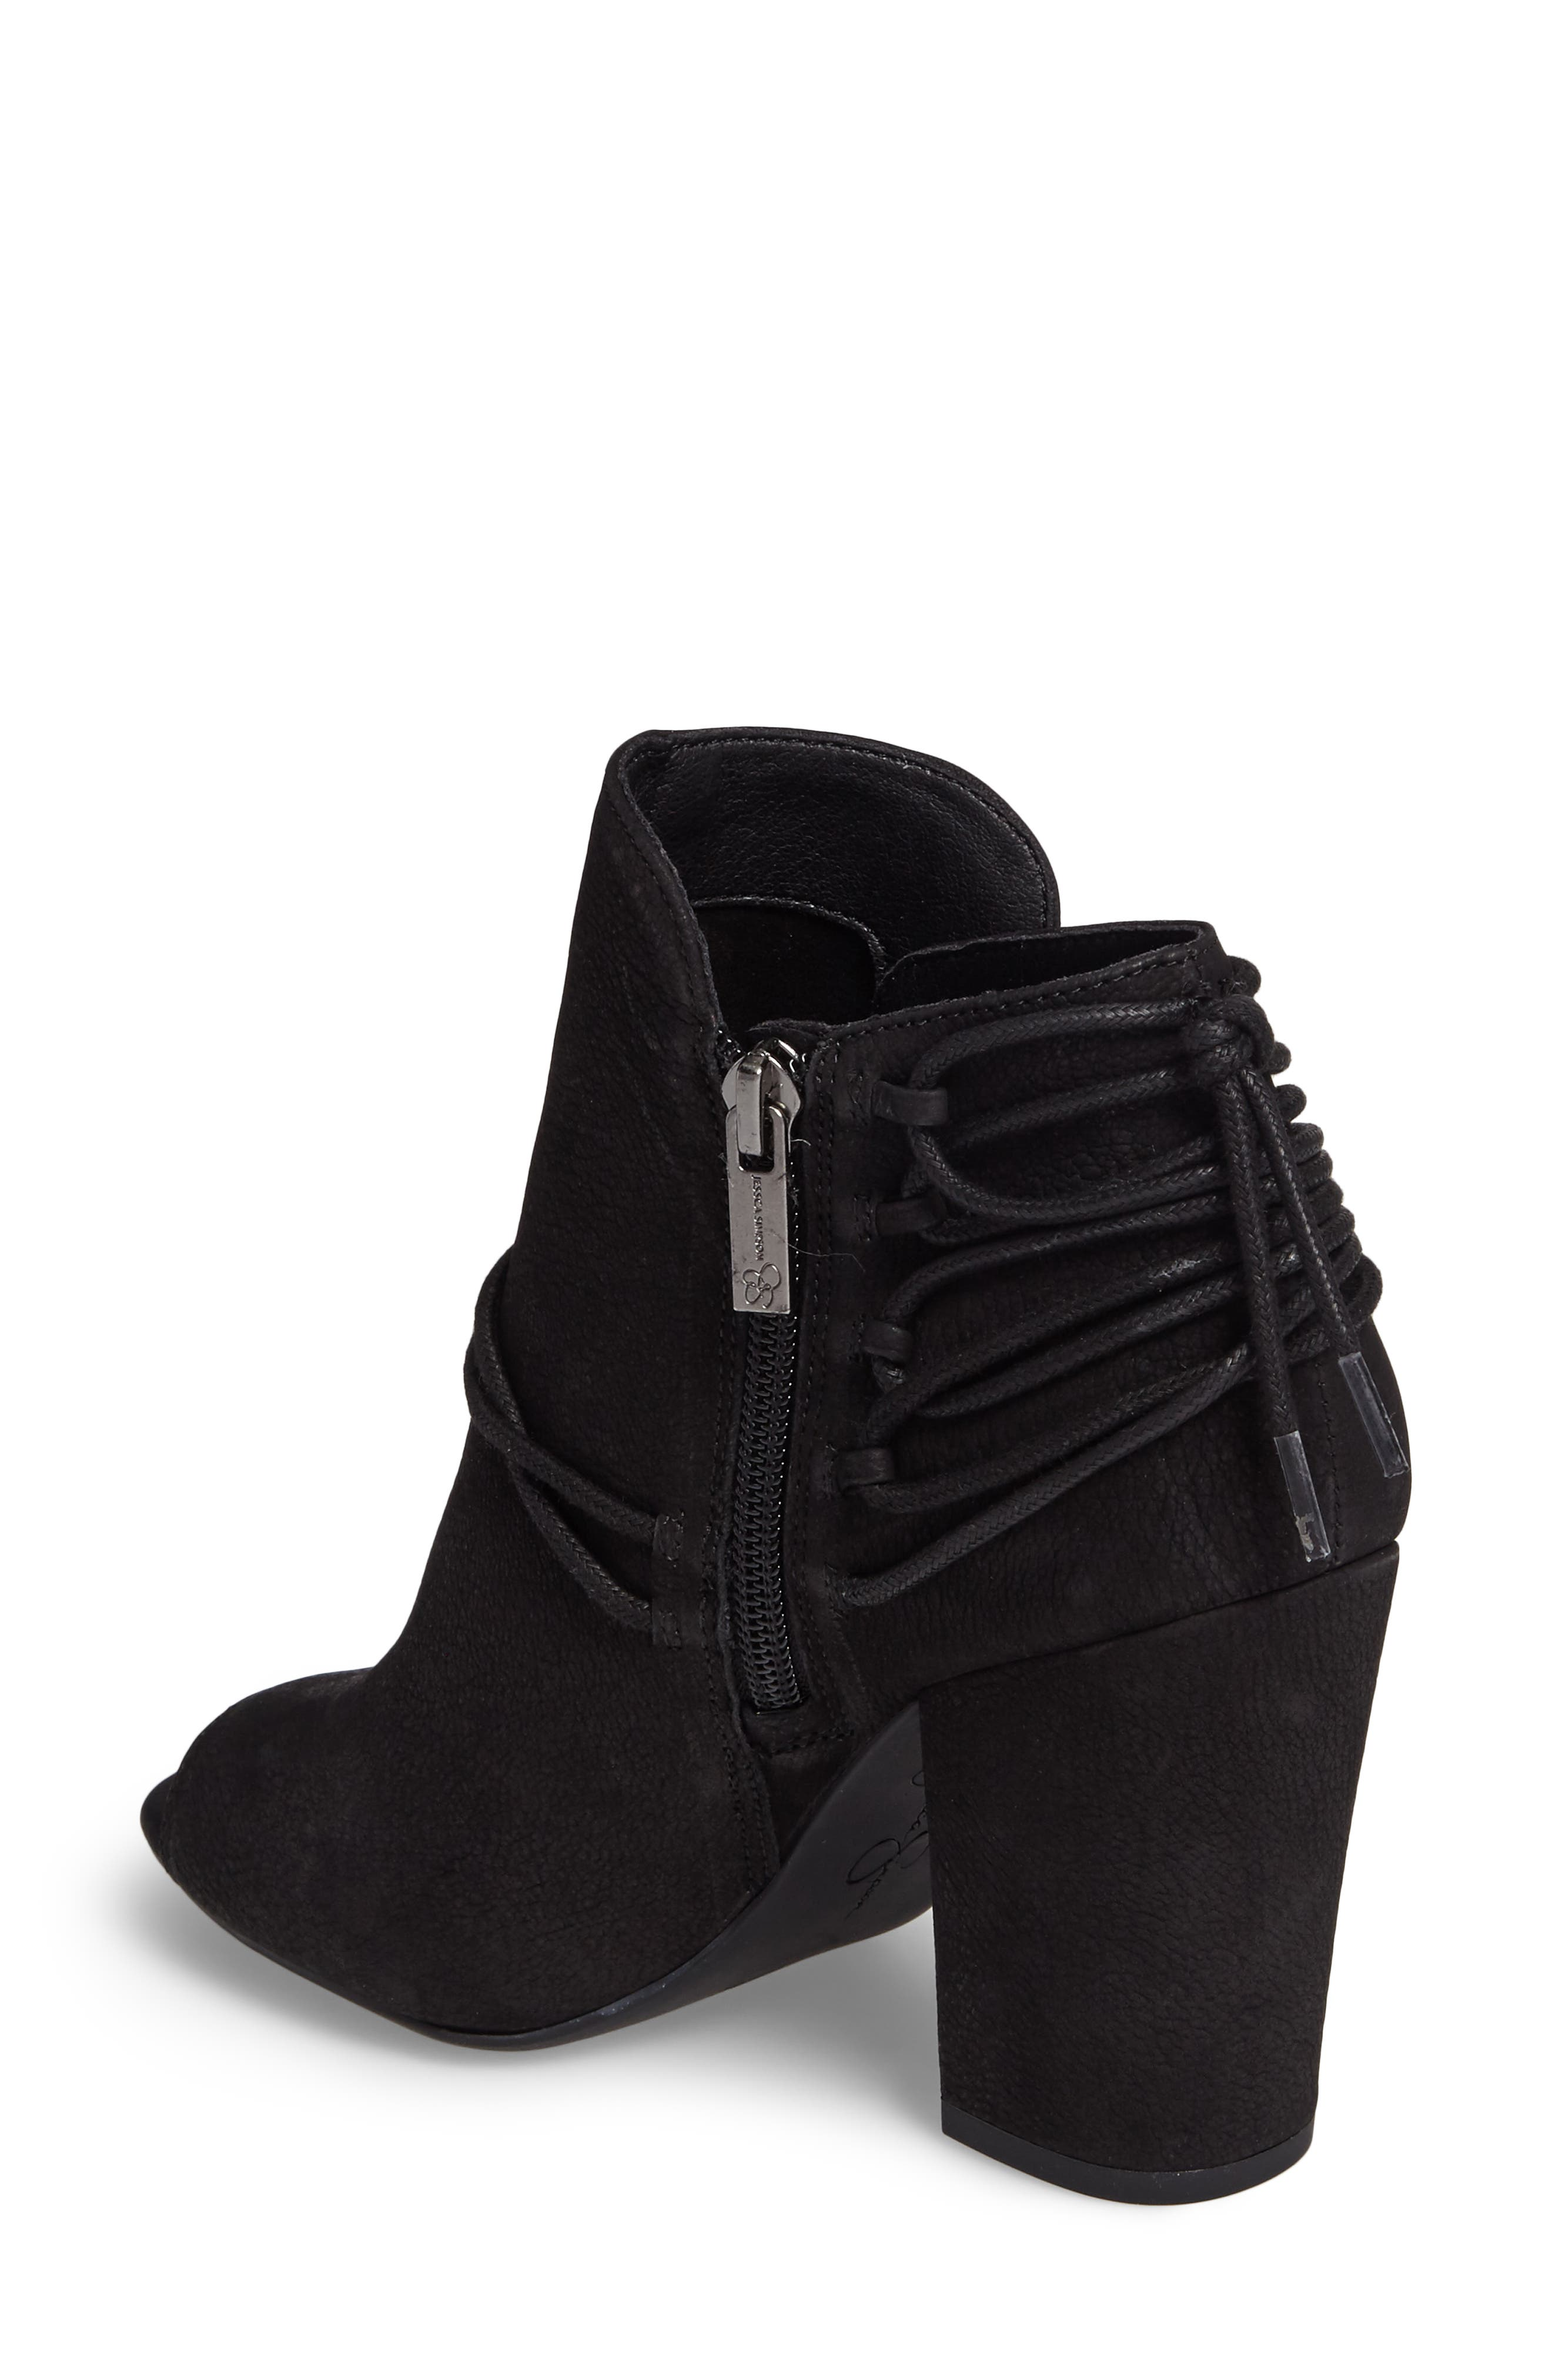 Remni Peep Toe Bootie,                             Alternate thumbnail 2, color,                             001